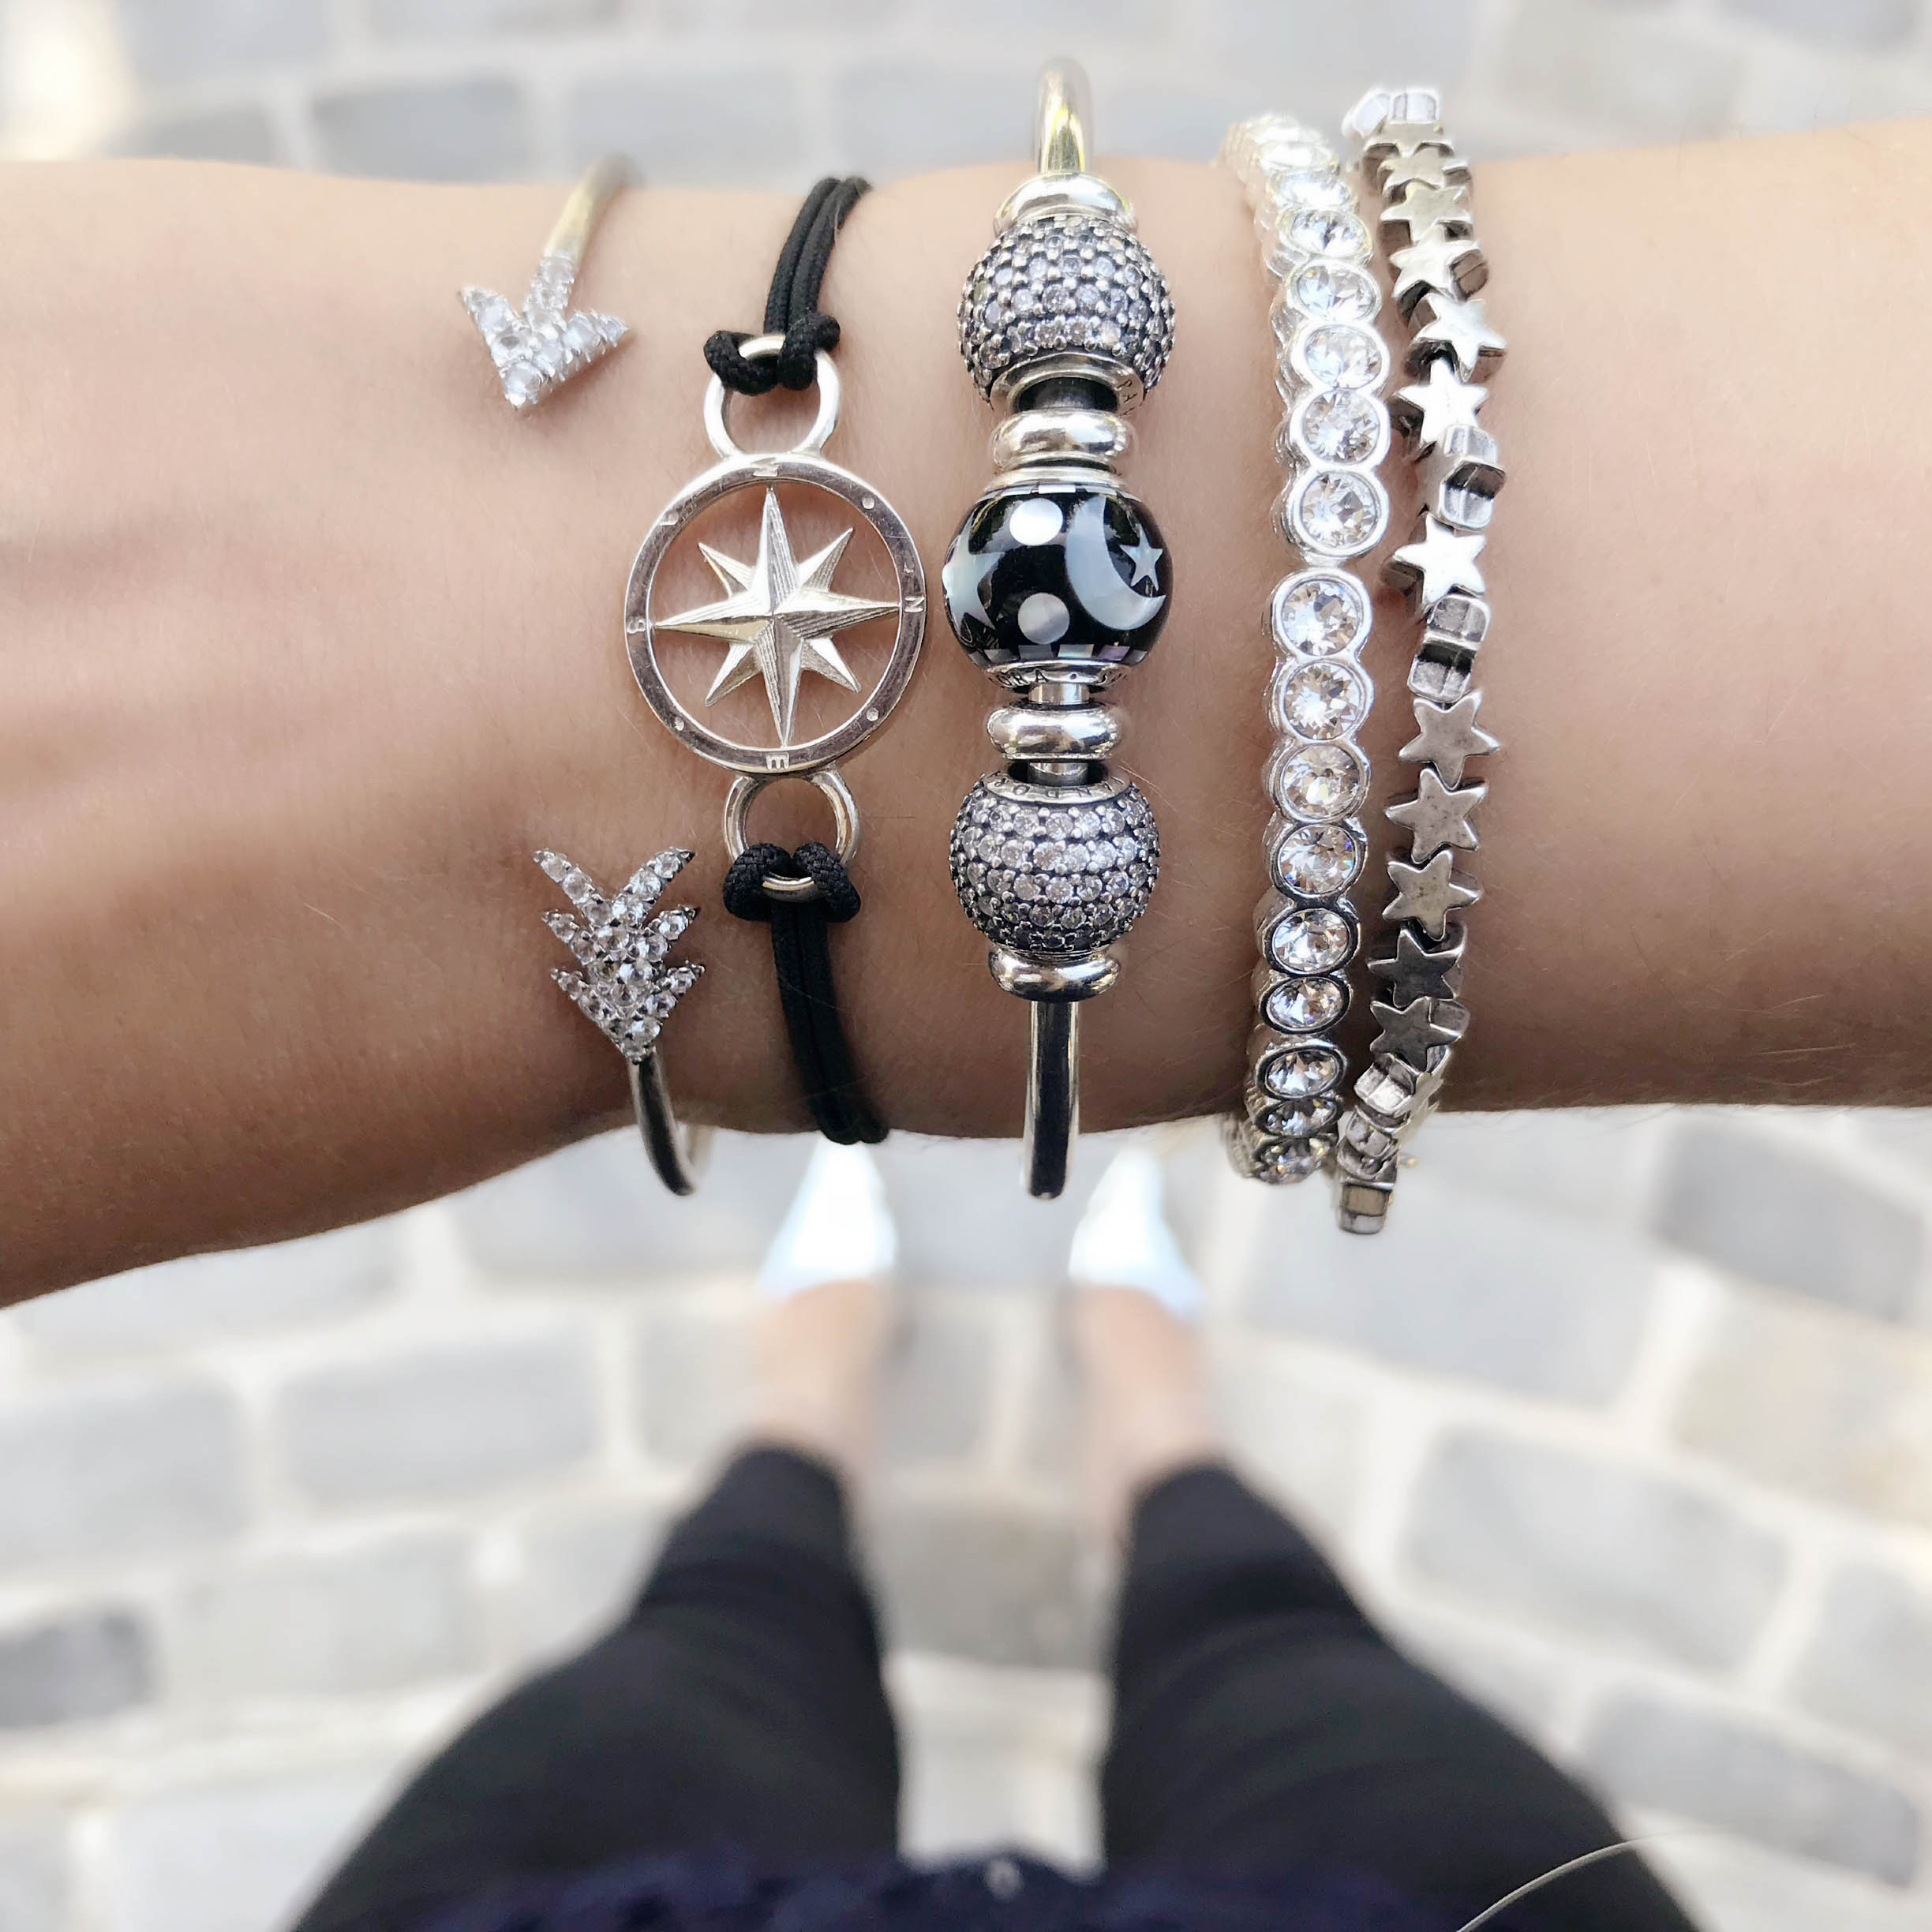 f3bfd055a One of our absolute favorite charms of the new collection is the Celestial  Mosaic charm ($65). Made with mother-of-pearl, the moon and stars have a ...